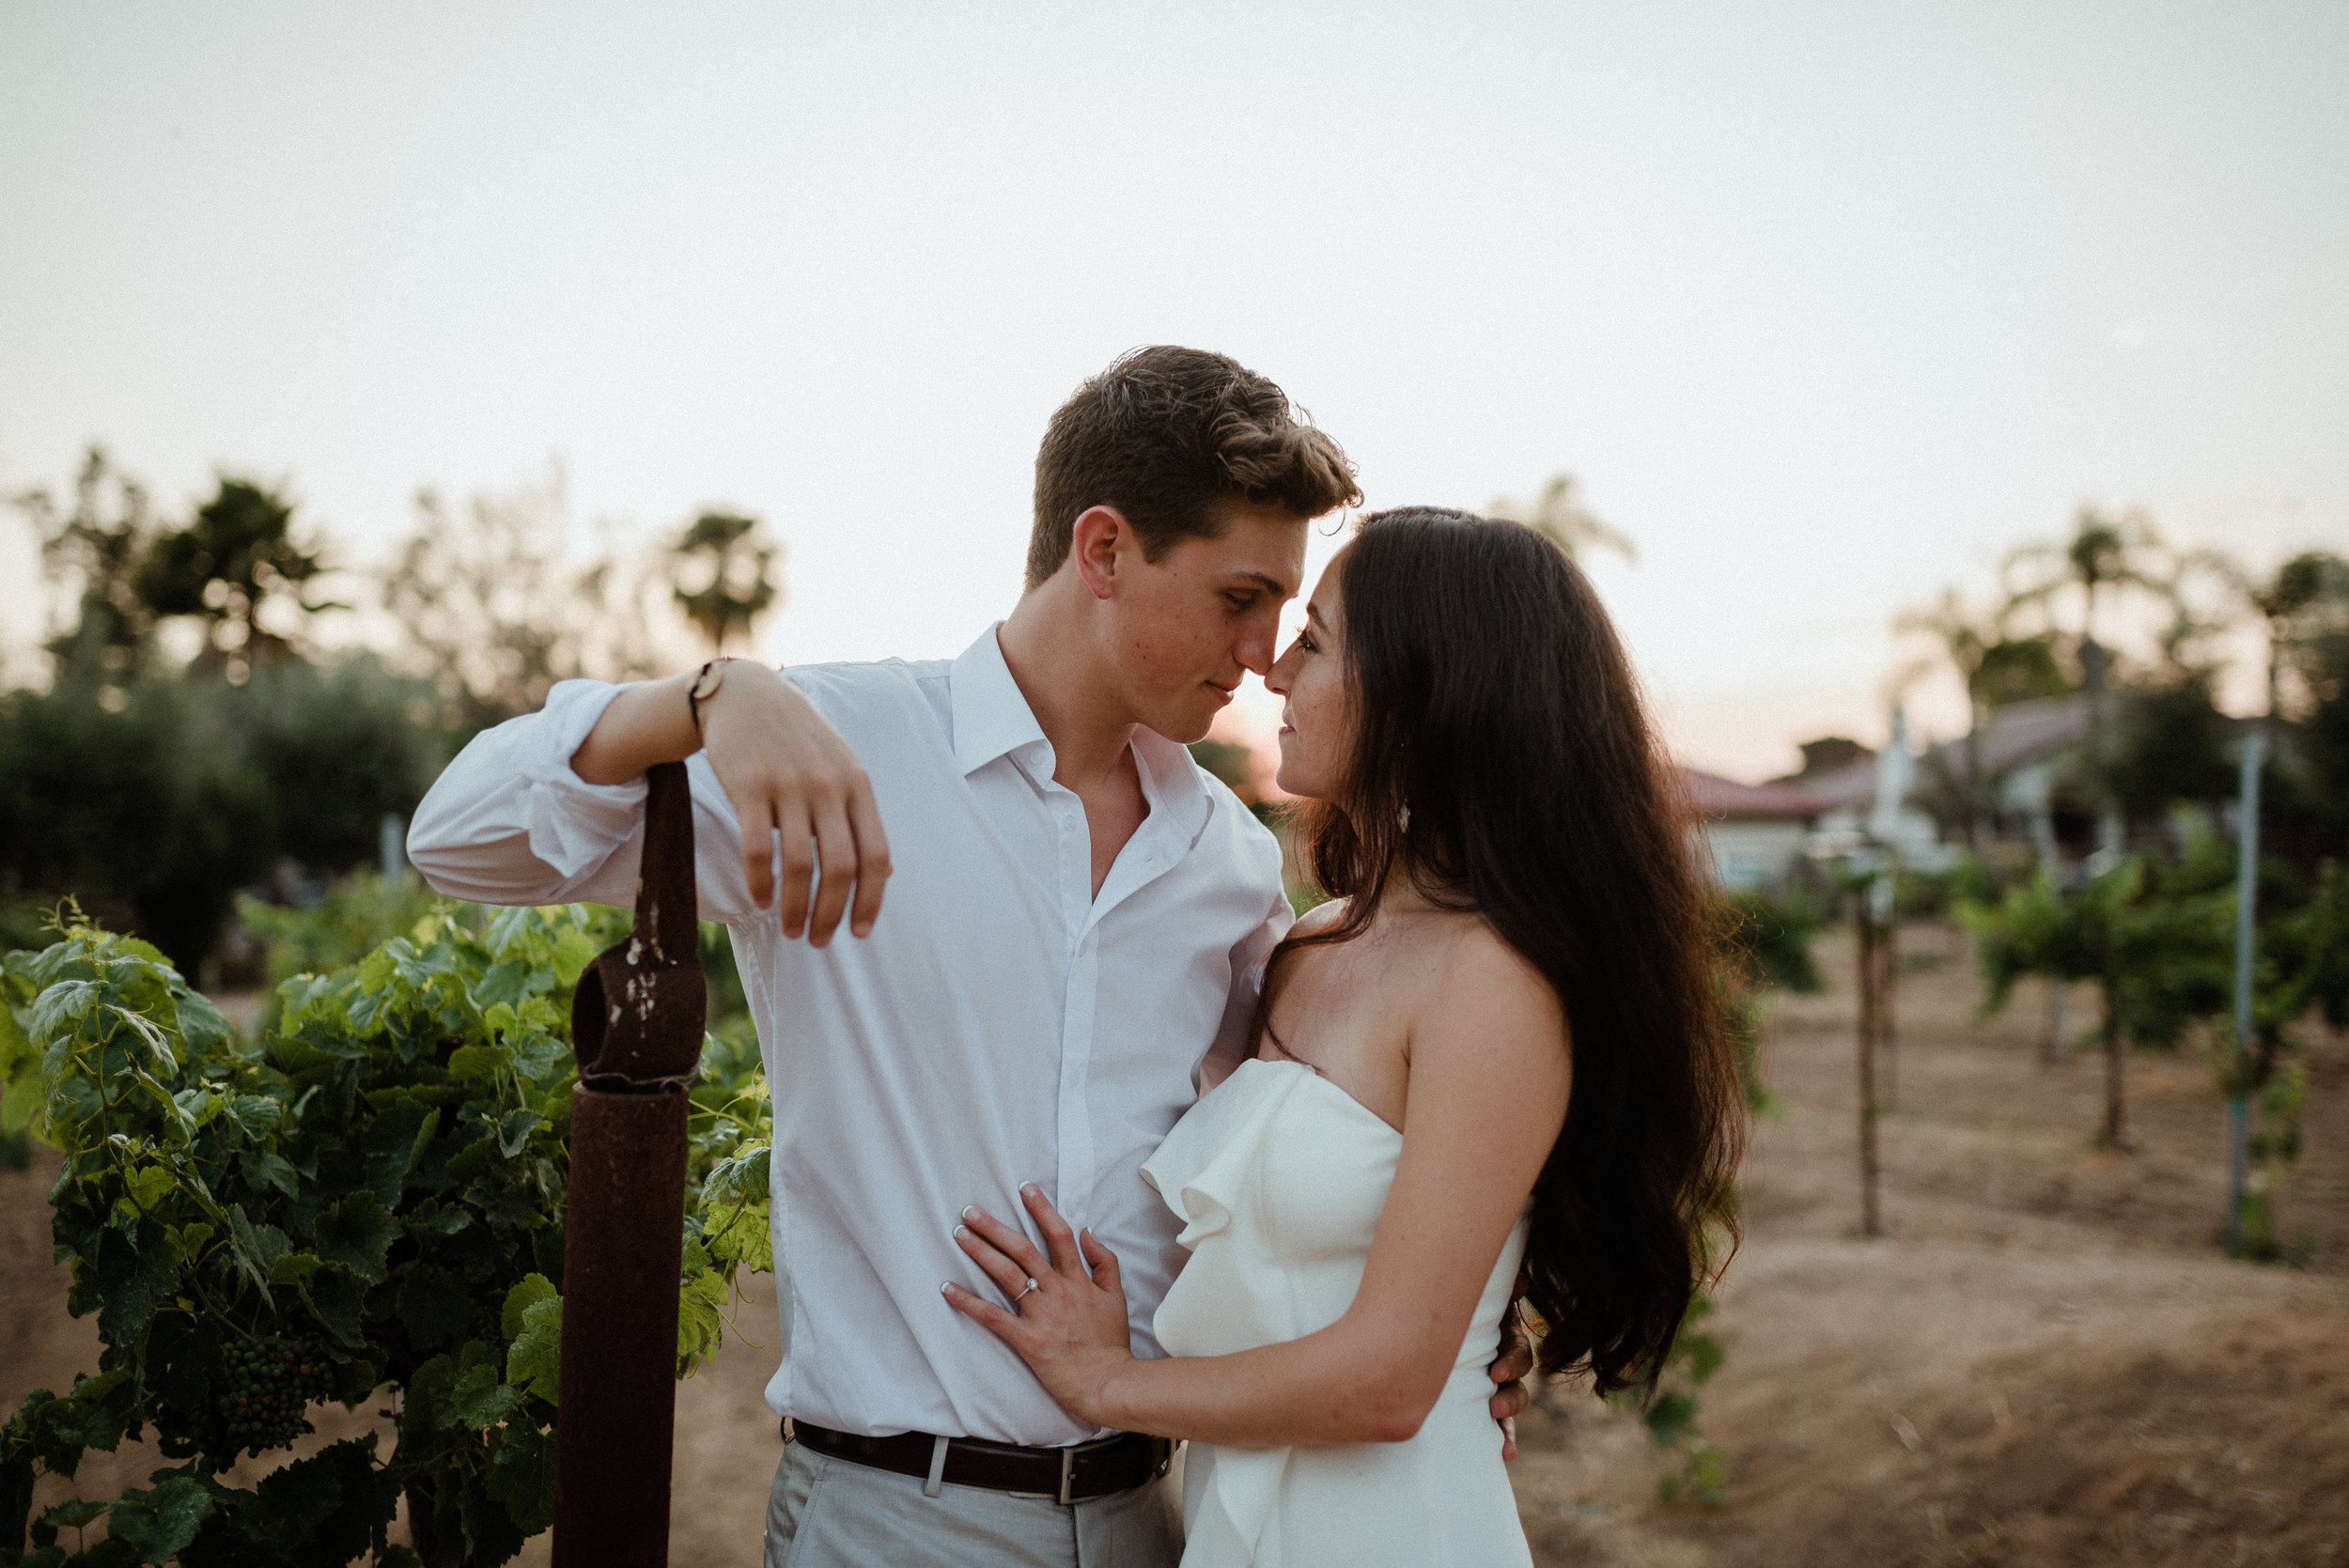 SanDiego-California-Bernardo-Winery-WashingtonDC-wedding-photographer-earthy-desert-wedding-LizRachelPhoto_0020